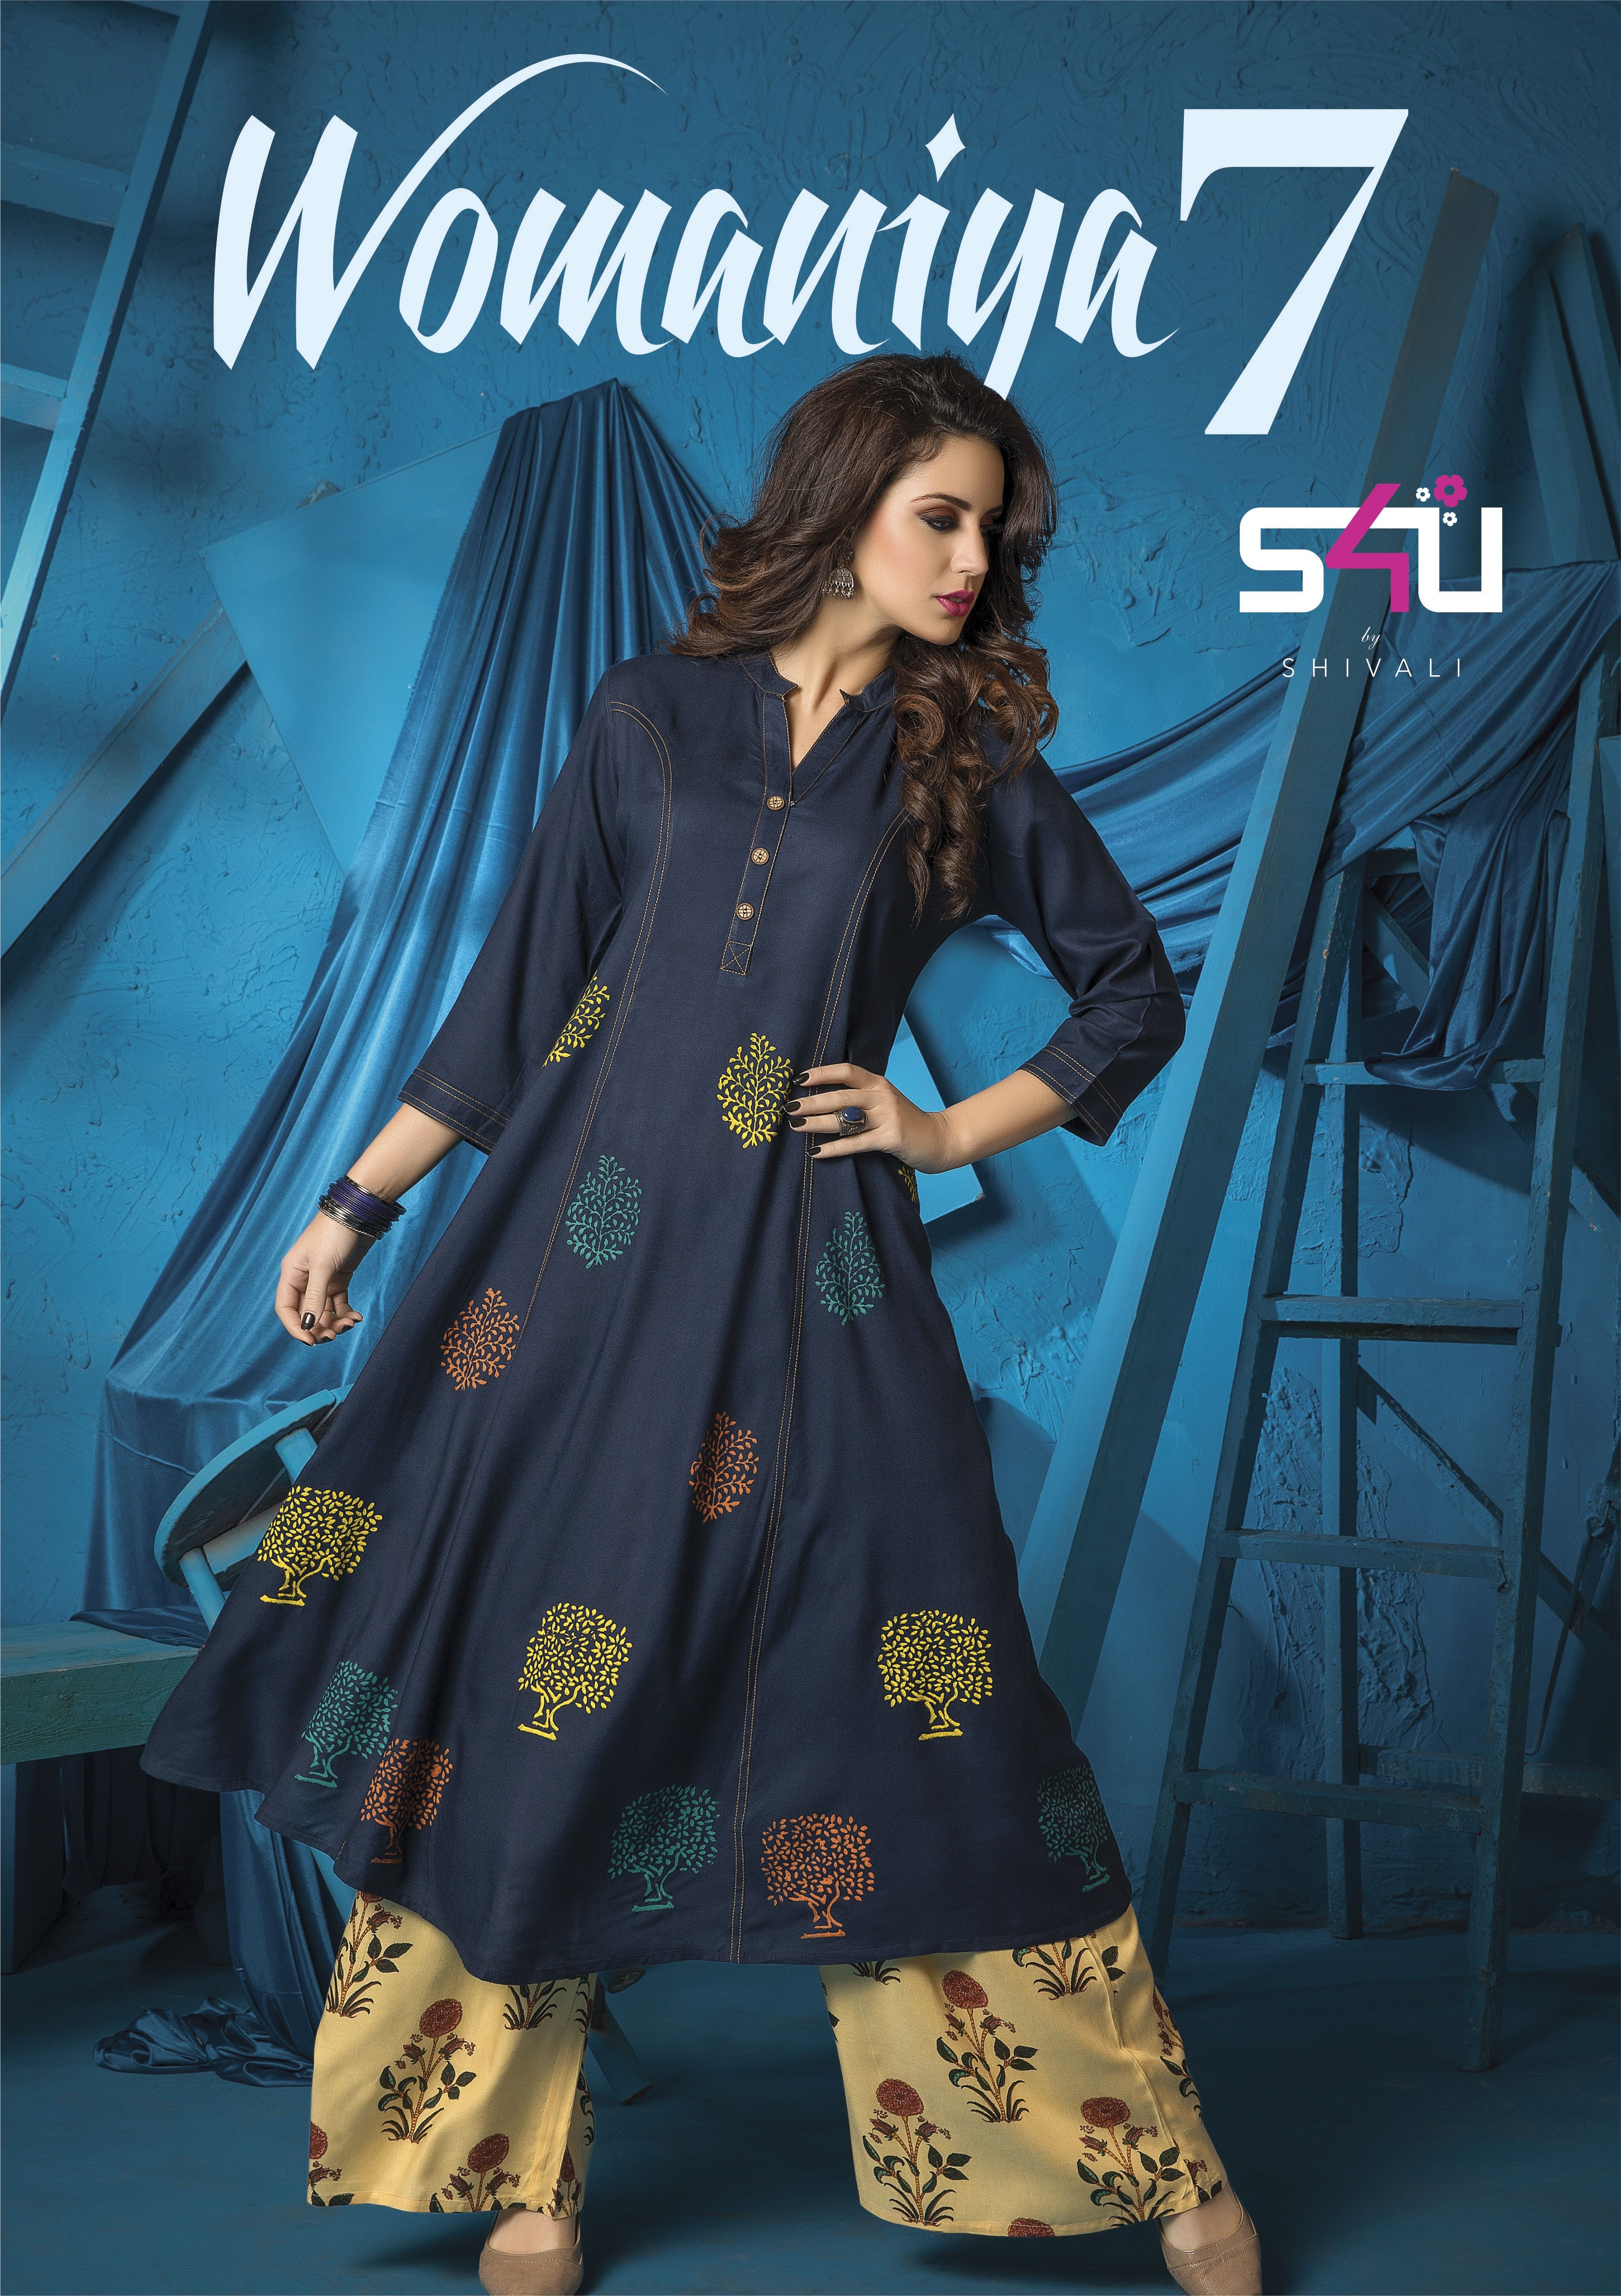 fb208499ee S4U by Shivali added 20 new photos. Published by Nitin Gupta · March 23 at 3:22pm  · #SummerIsAlmostHere Fall in love with super cool kurti & palazzo sets ...